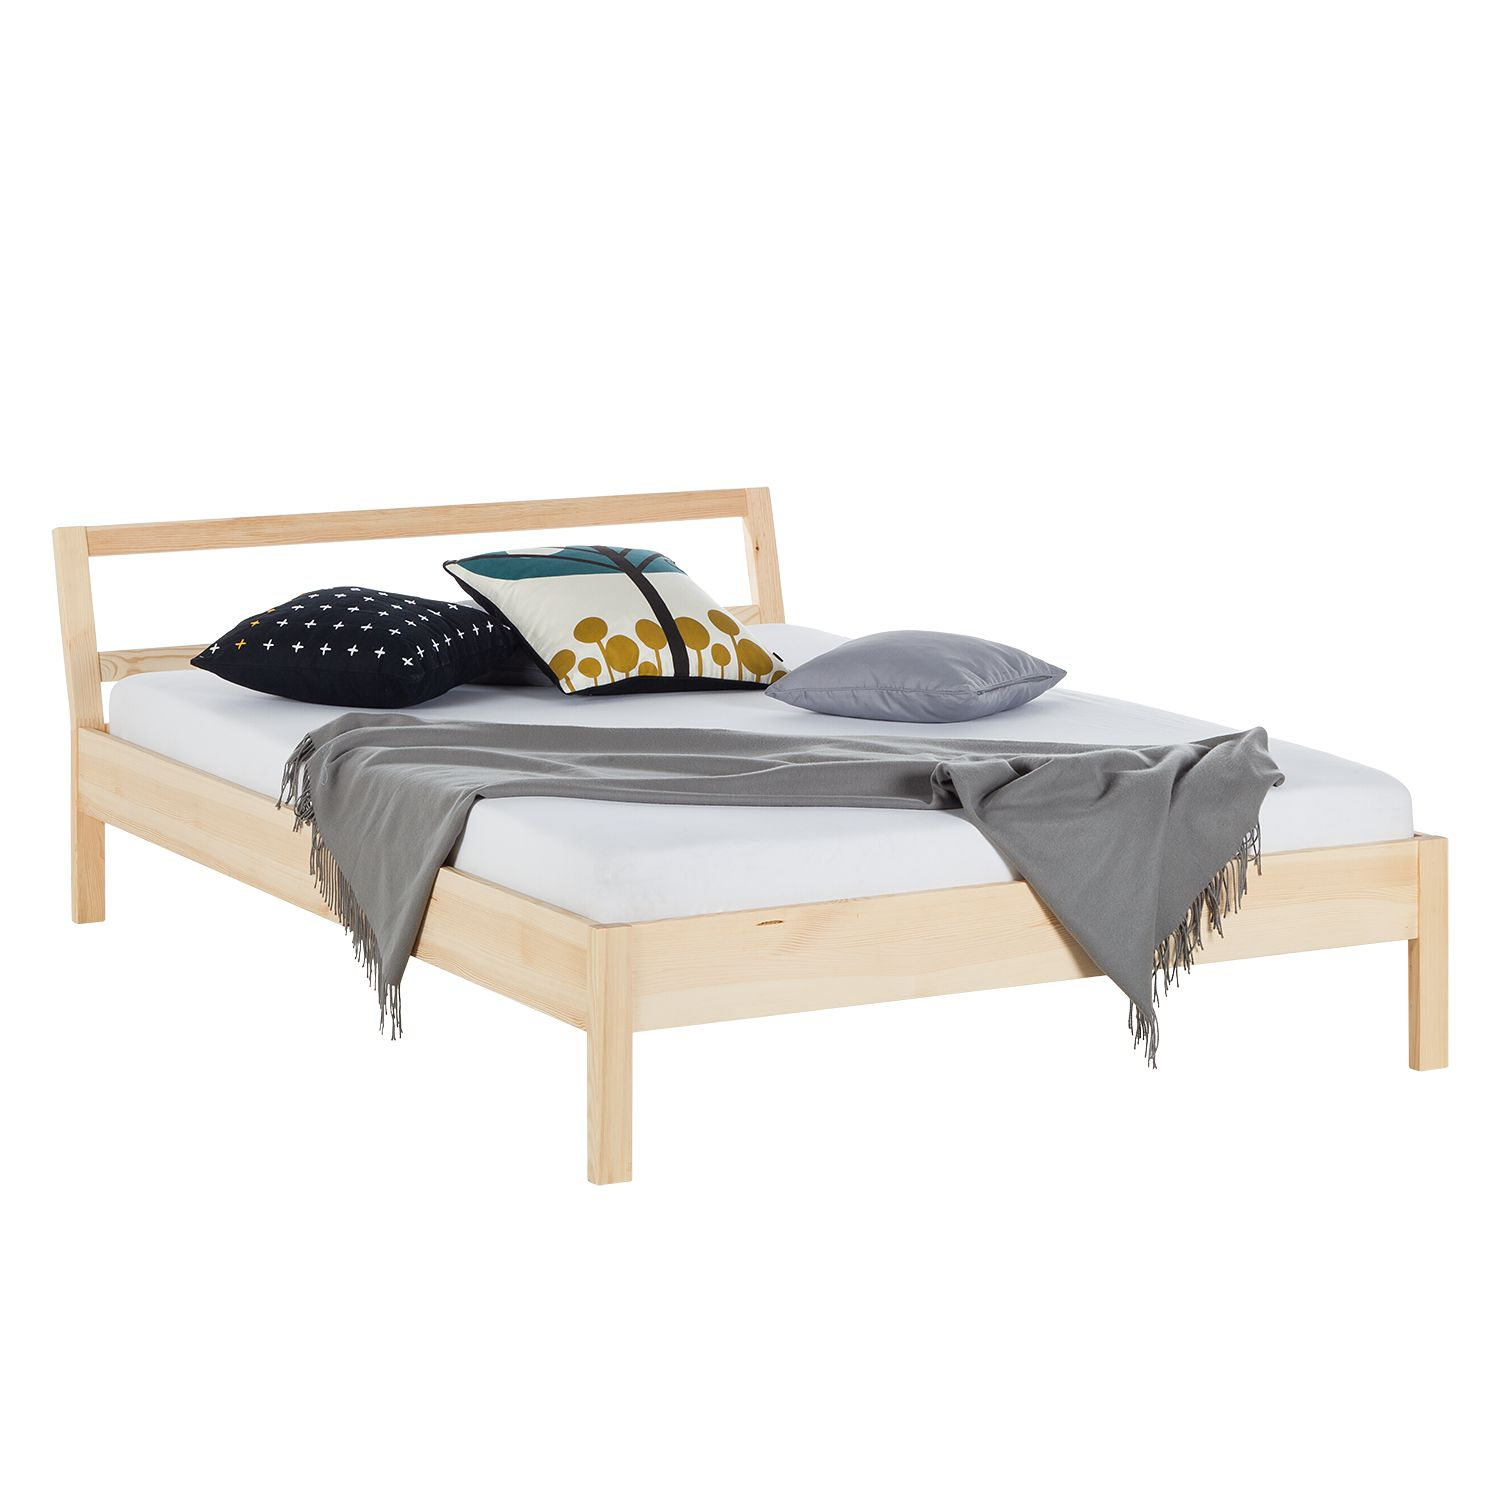 Lit en bois massif KiYDOO wood - Pin massif, mooved